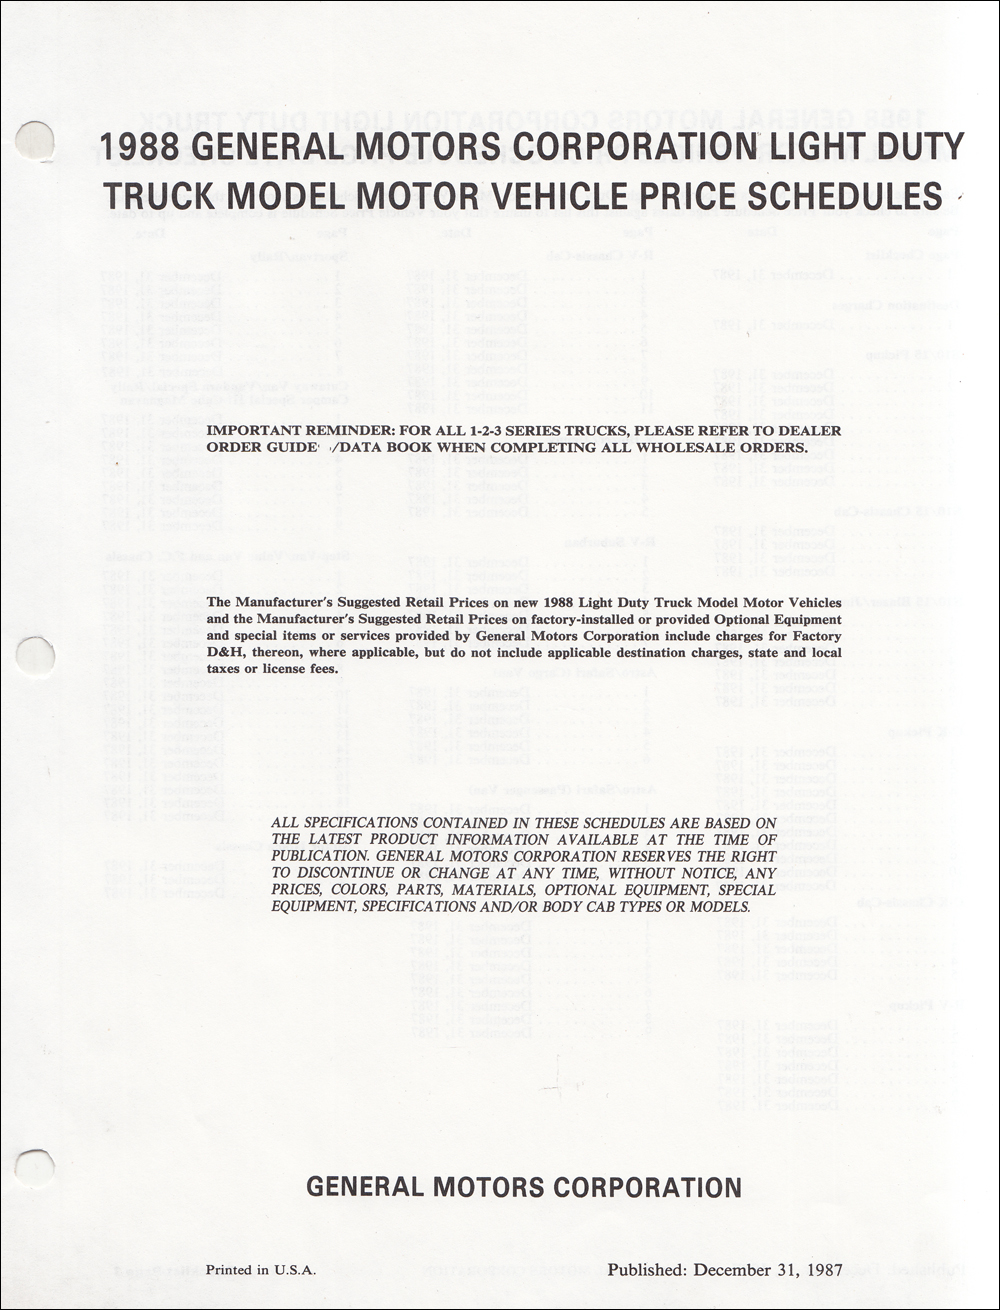 1988 GMC Truck Price Schedule Dealer Album Original